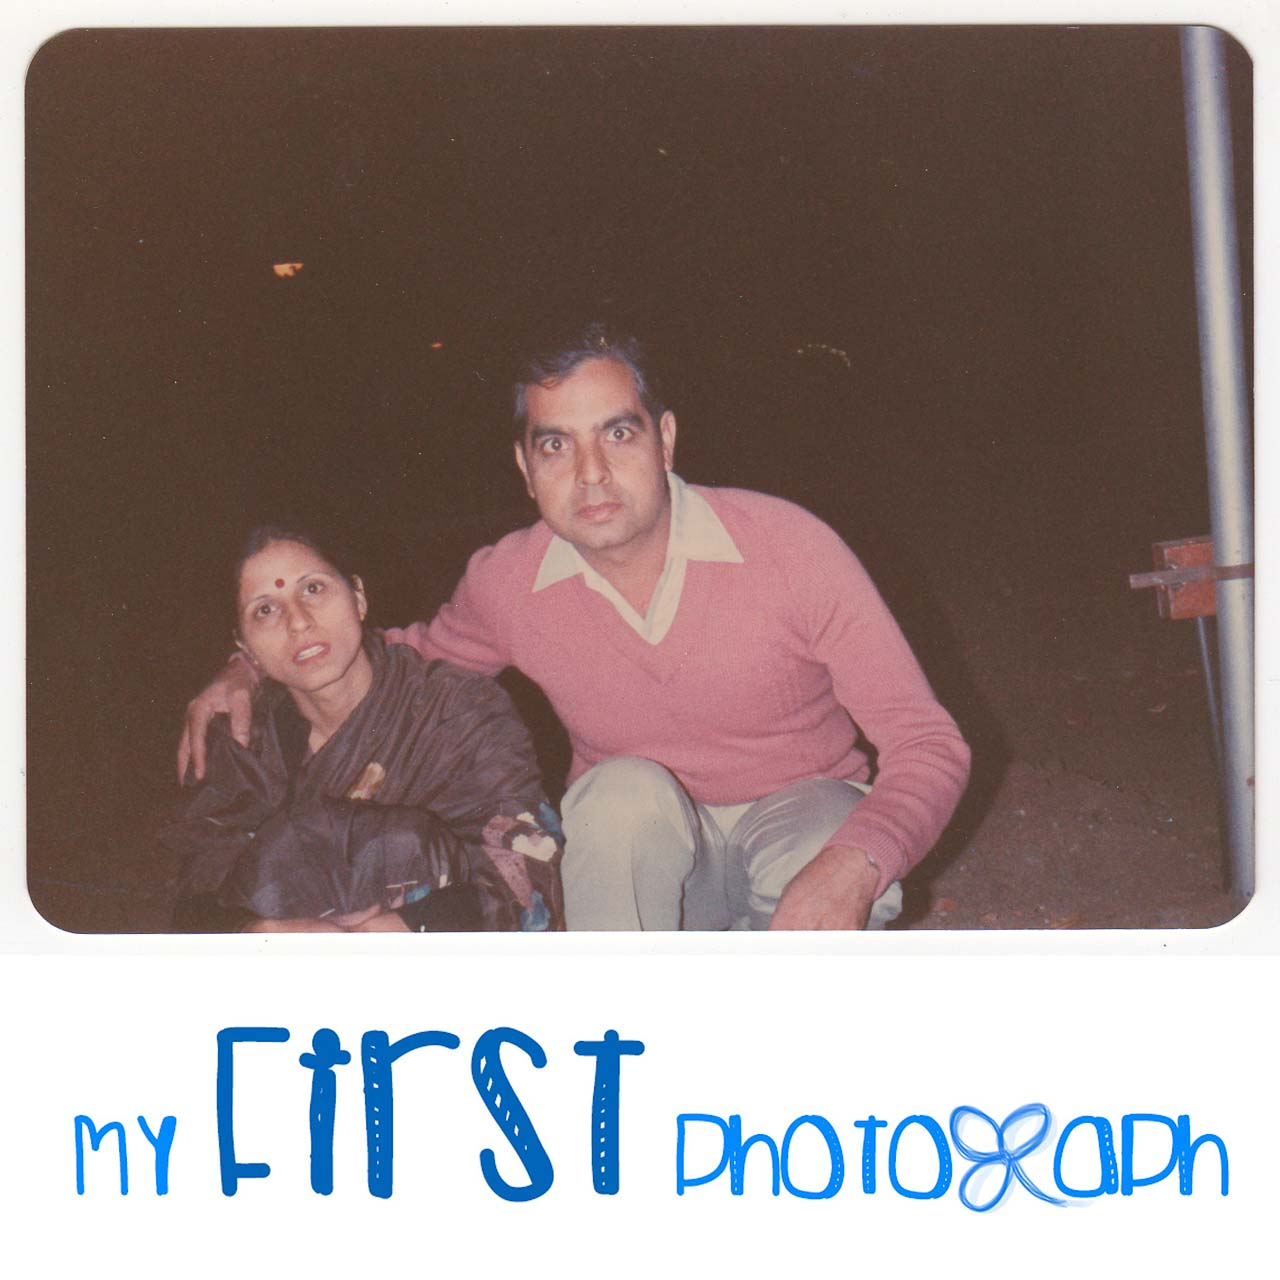 MyFirst-picture-Mom-Dad-By-RamitBatra-HD2